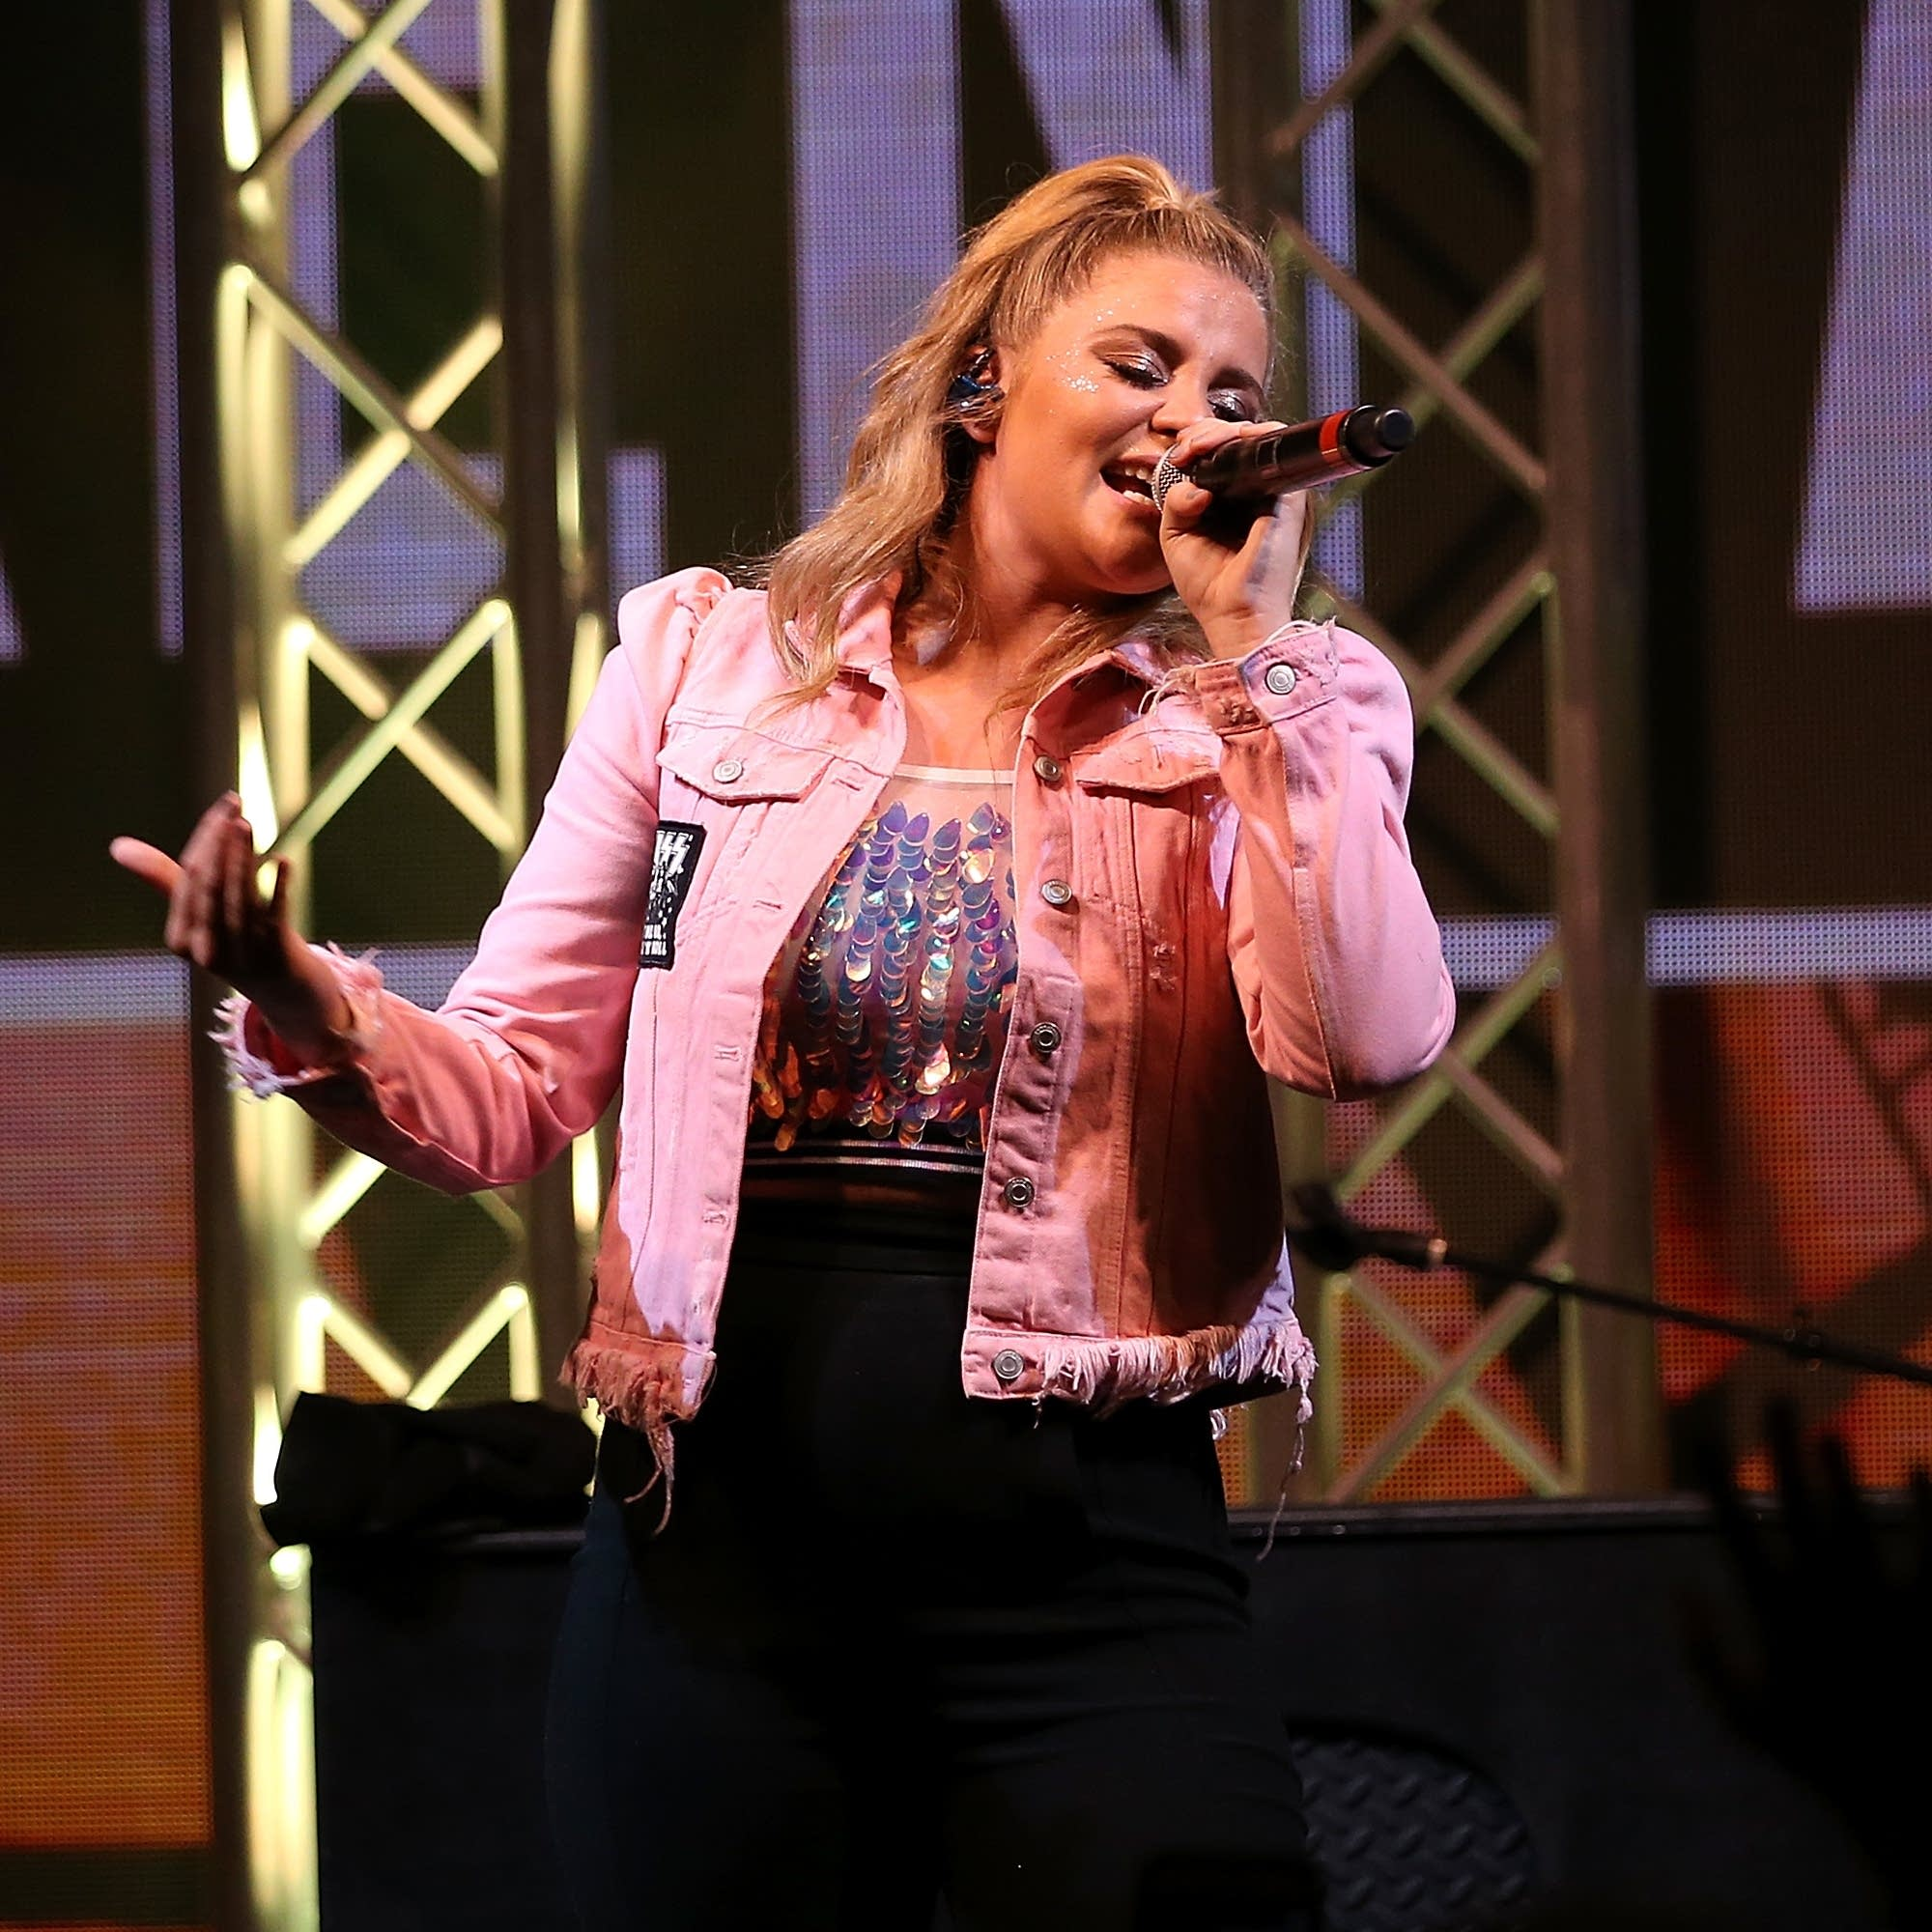 Lauren Alaina performs in Arkansas, 2018.